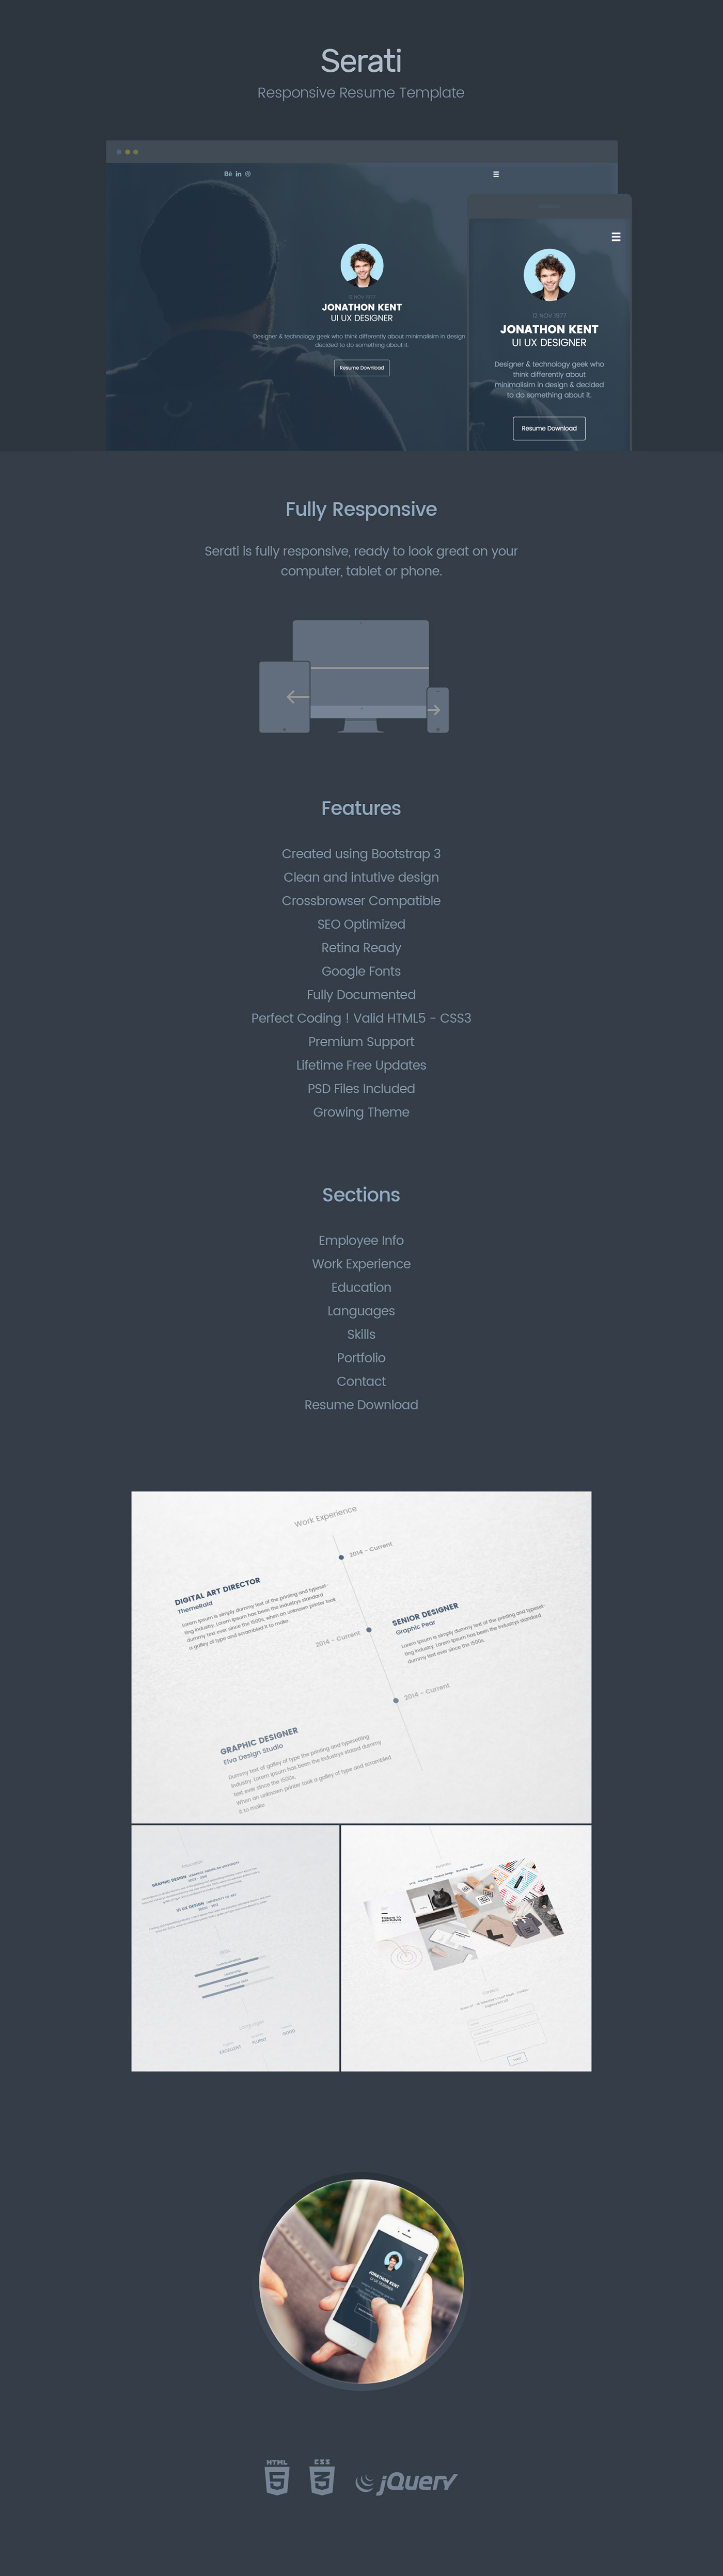 Serati free html resume template on behance yelopaper Image collections